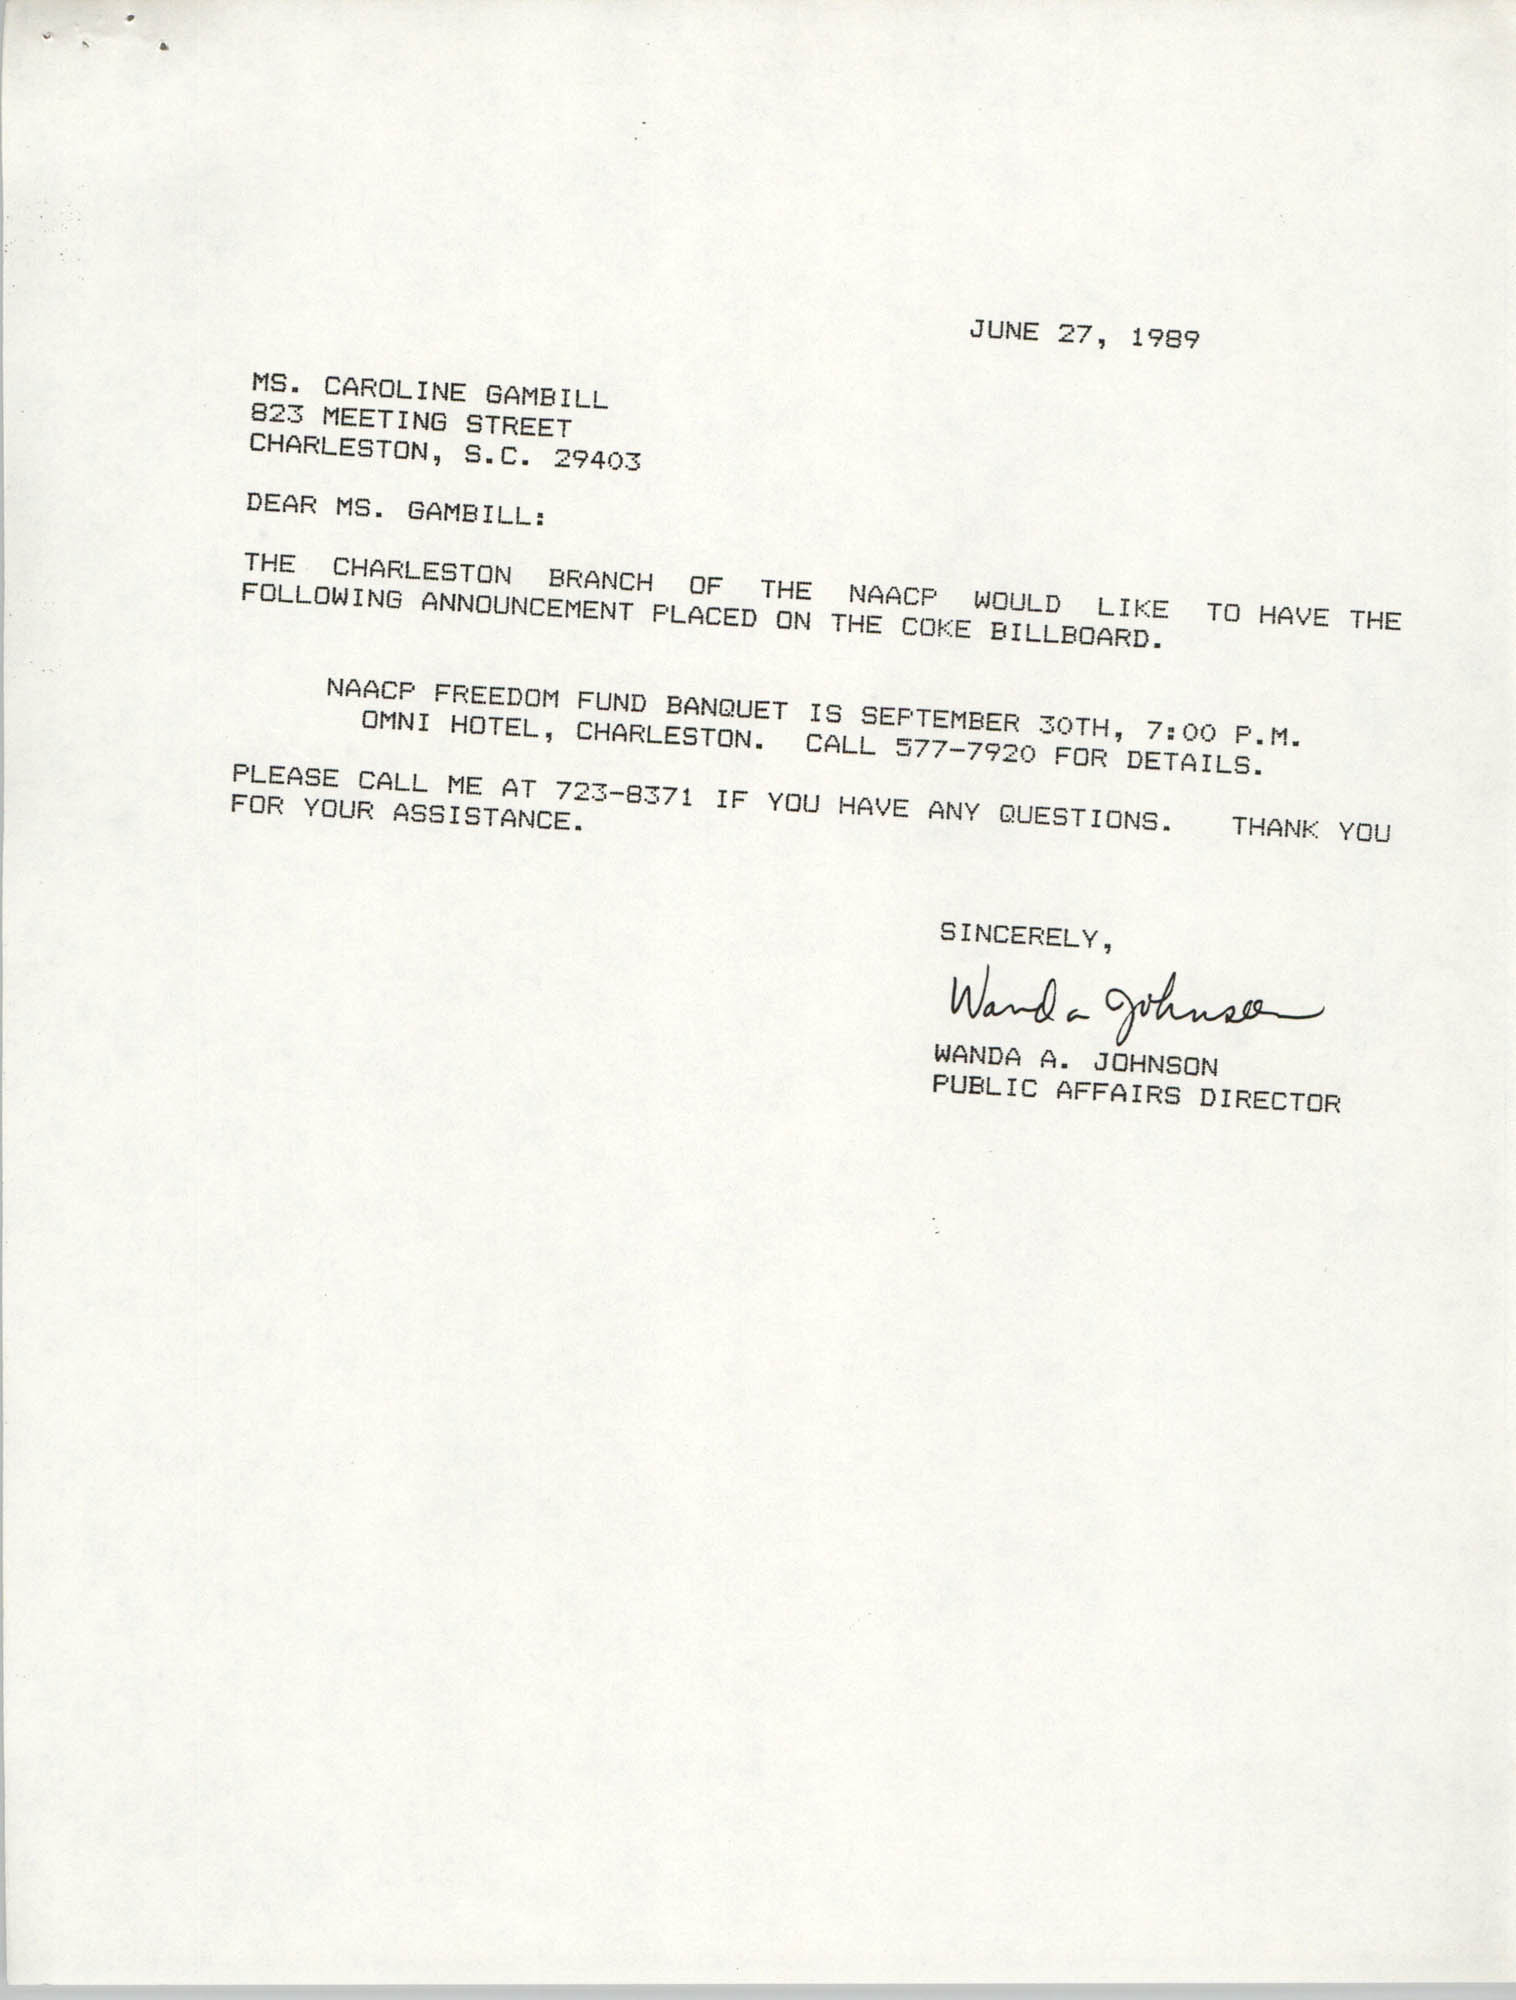 Letter from Wanda A. Johnson to Caroline Gambill, June 27, 1989